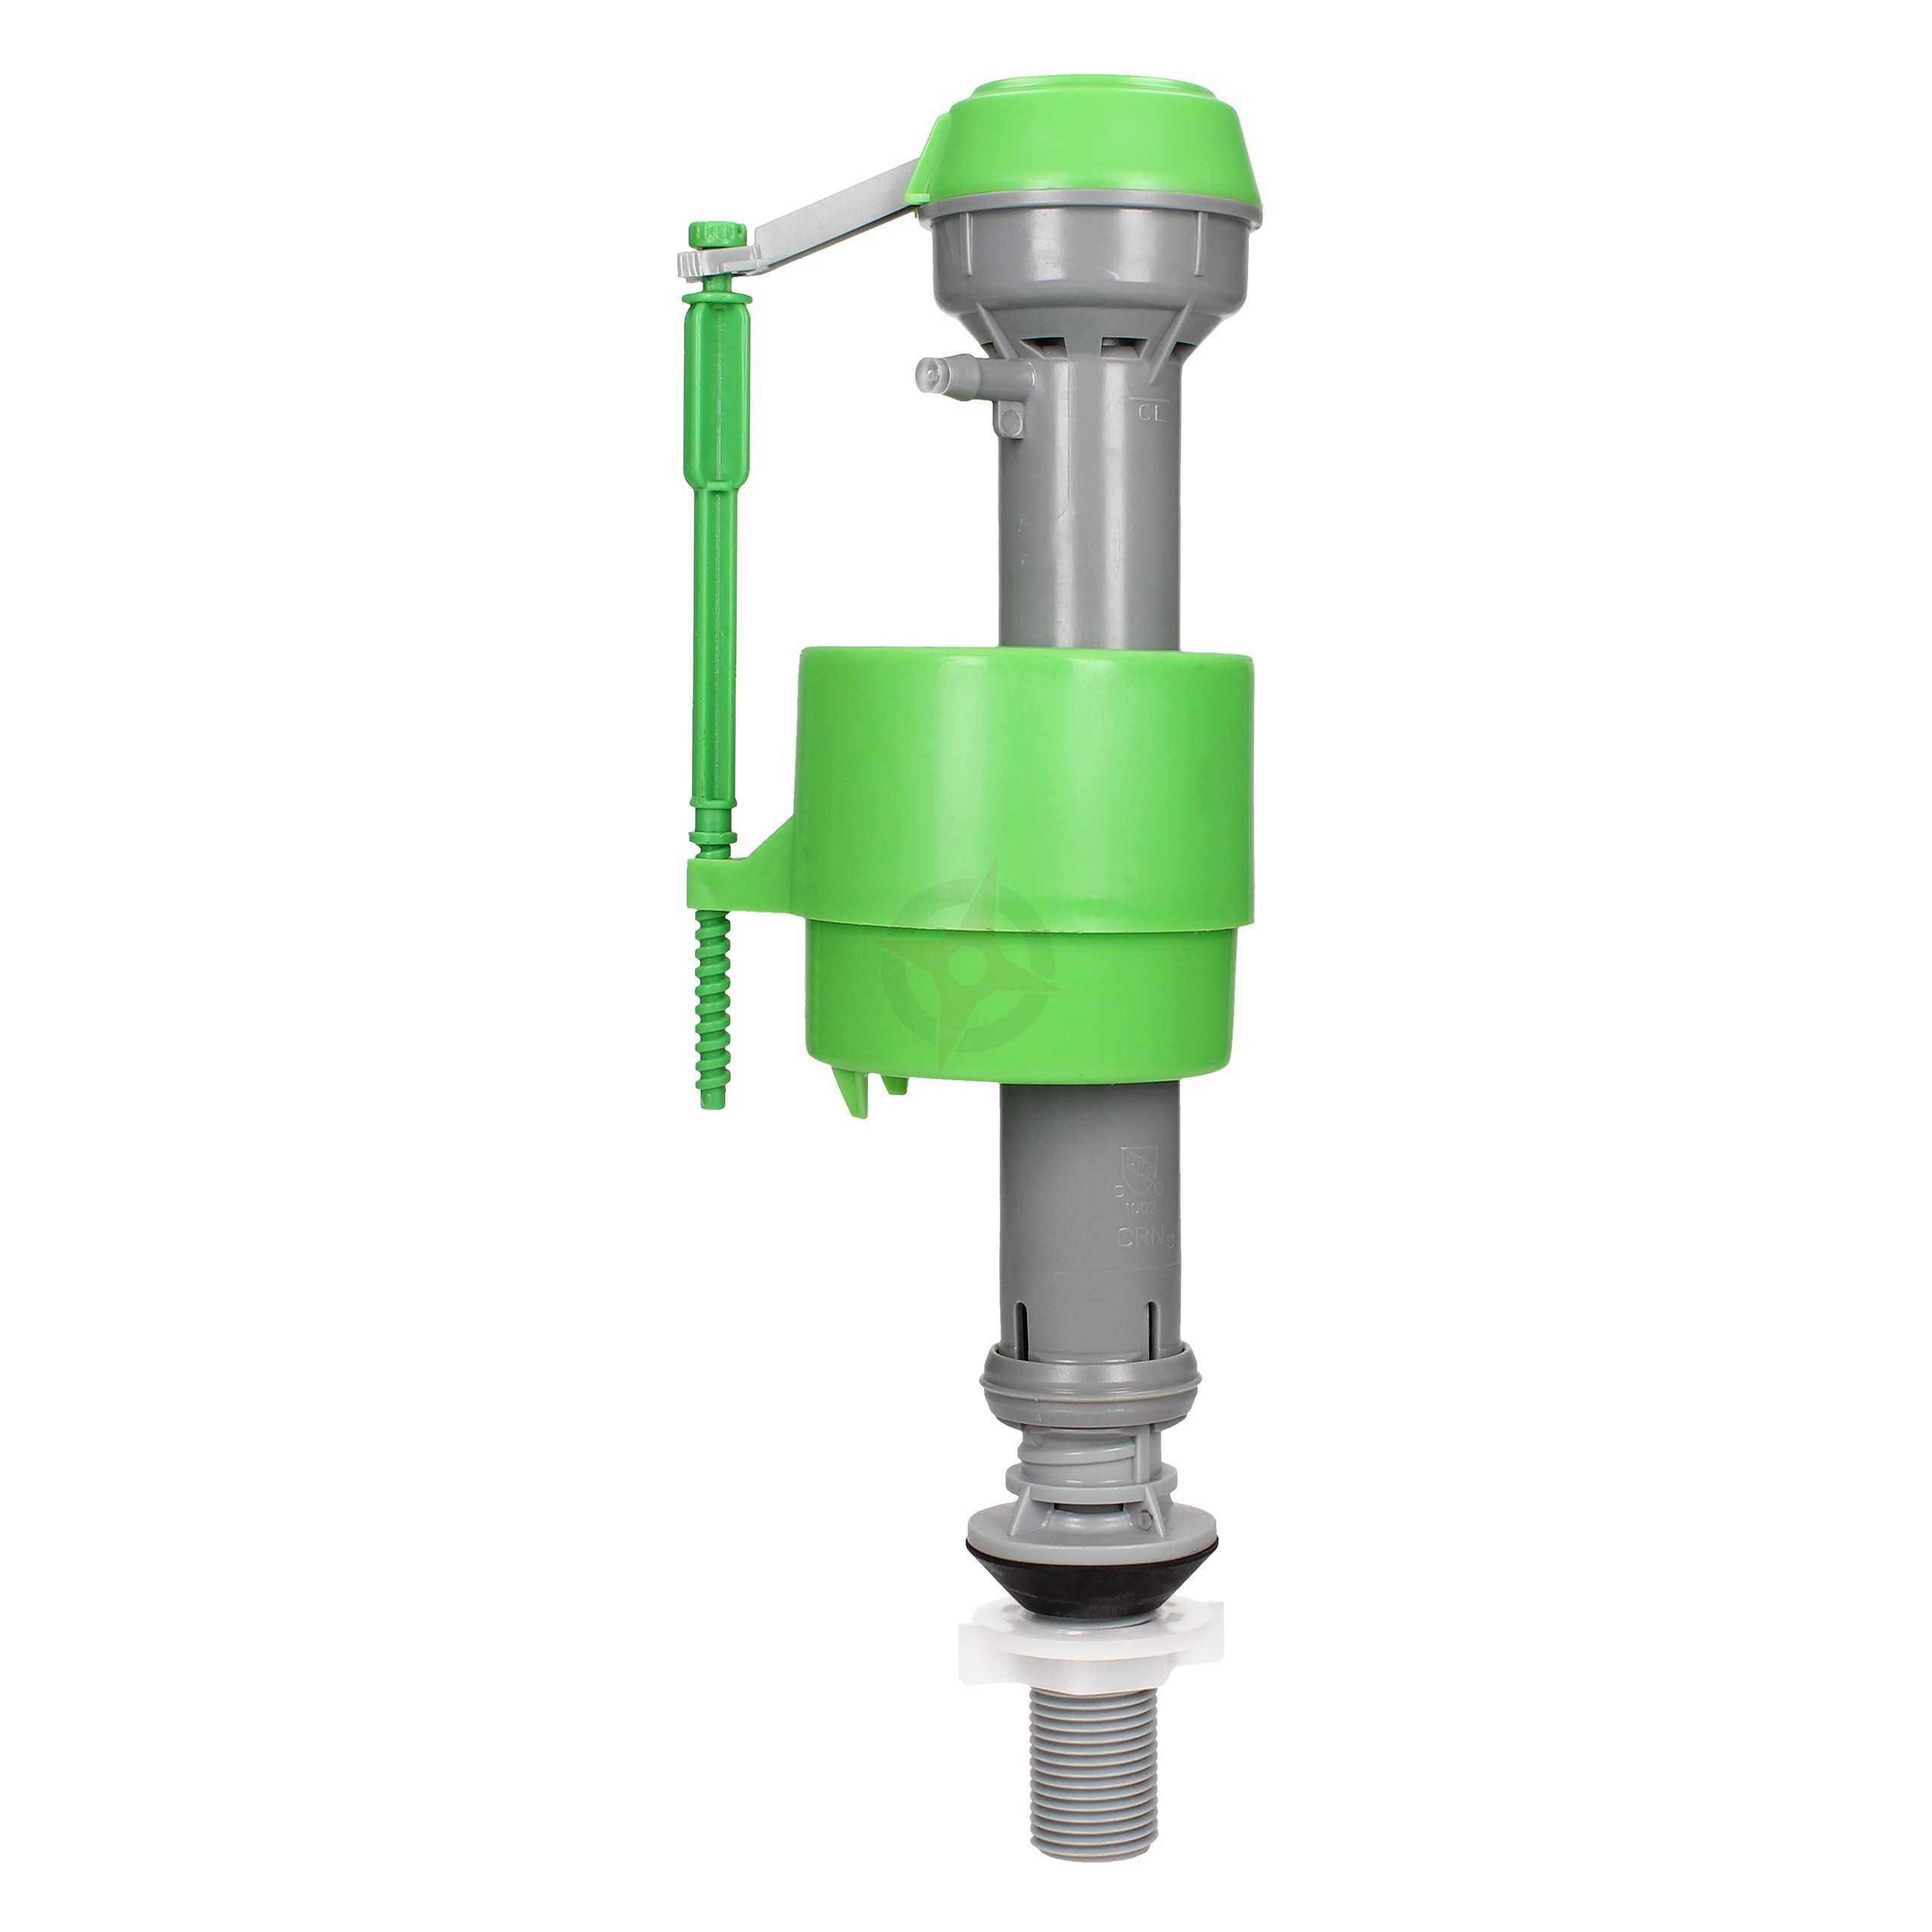 "FlushKING Adjustable Bottom Entry Fill Valve - Plastic Shank (1/2"")"